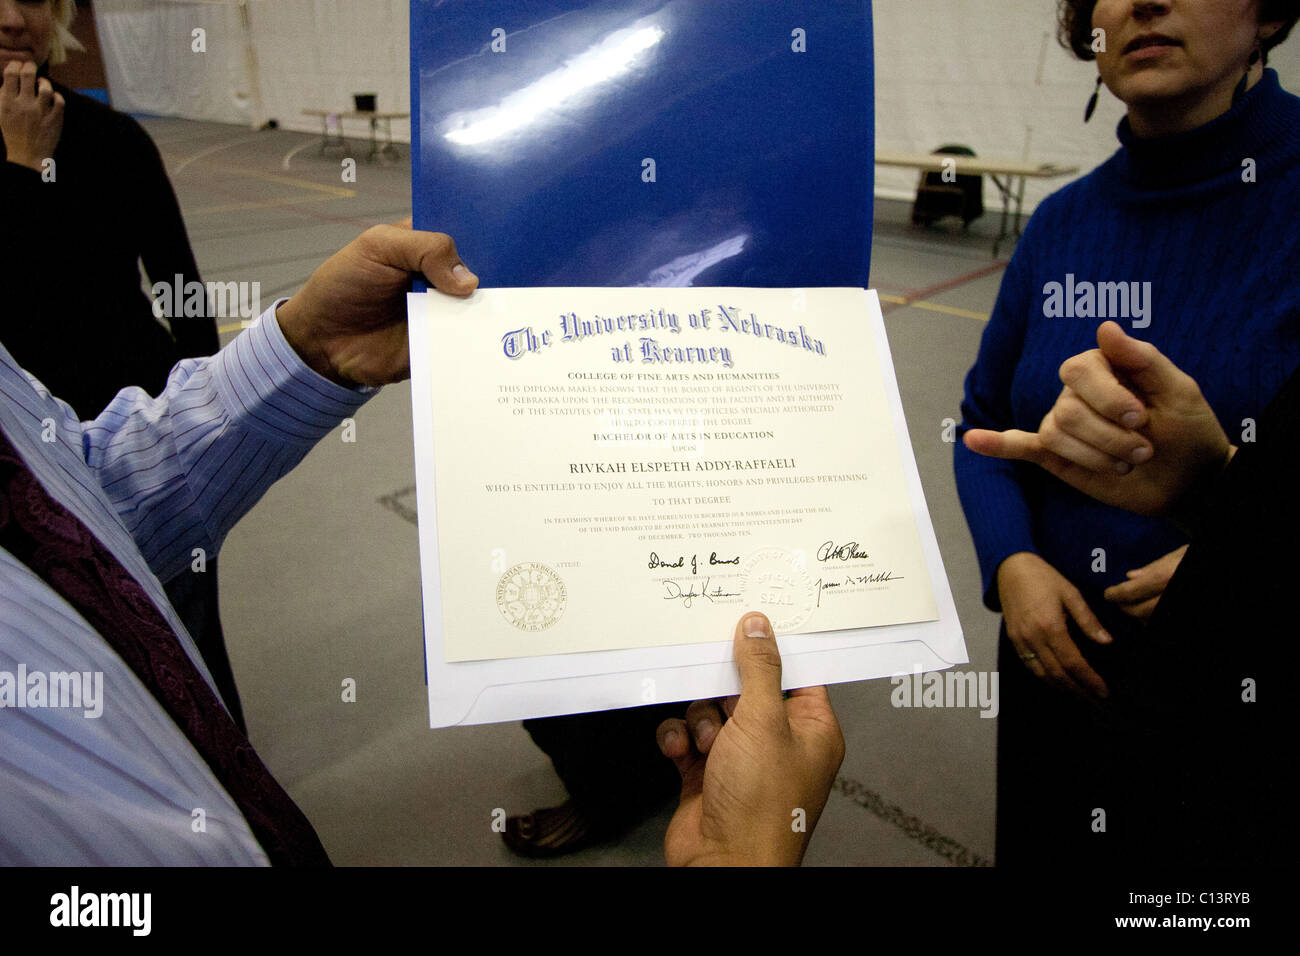 A man holds a college diploma for the University of Nebraska at Kearney. Stock Photo